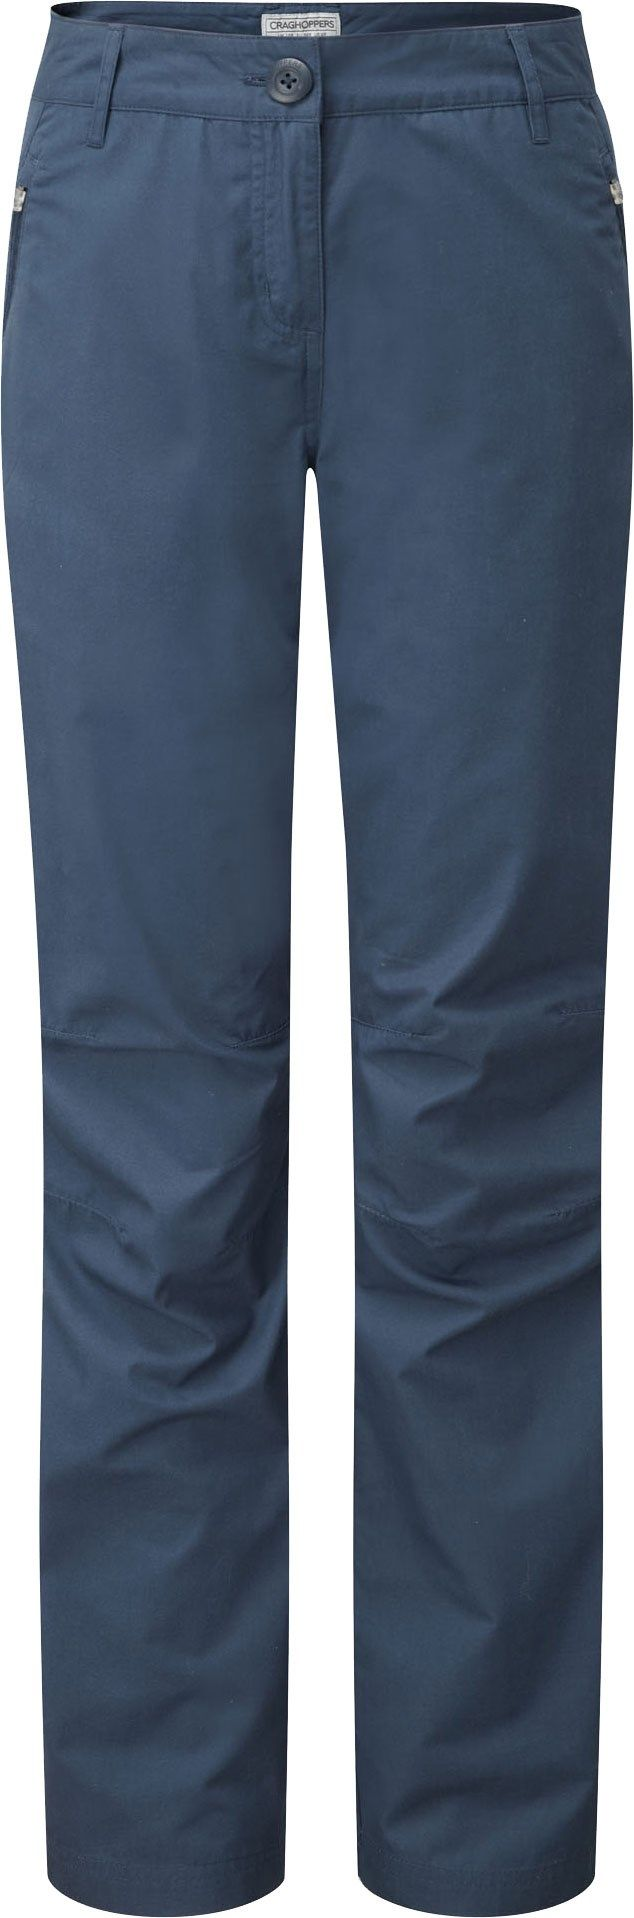 Adventure-ready walking trousers with roomy pockets and a comfortable fit.